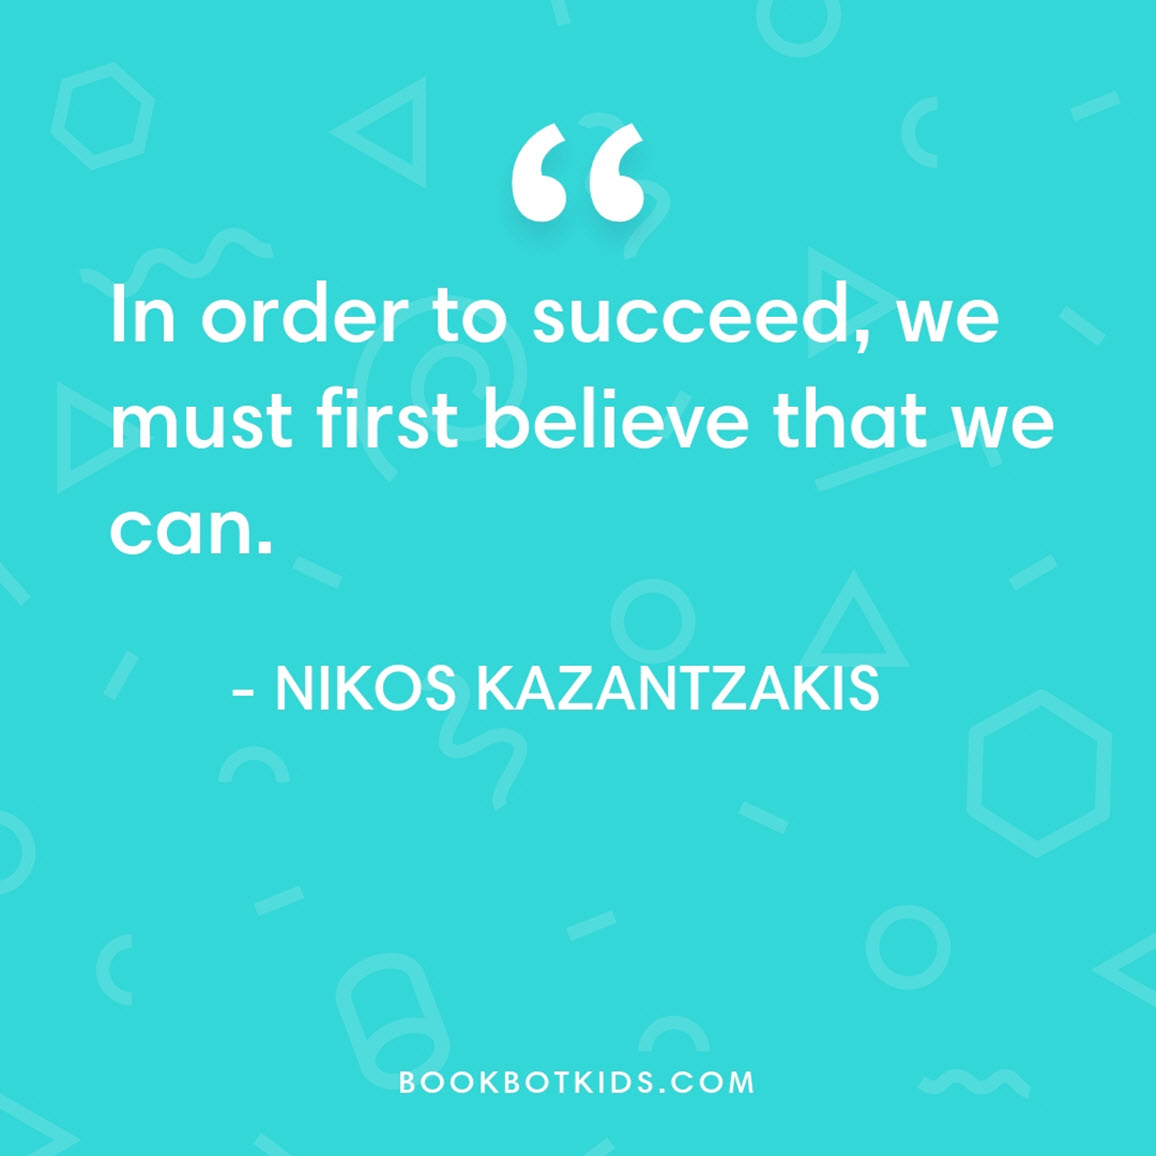 In order to succeed, we must first believe that we can. – Nikos Kazantzakis